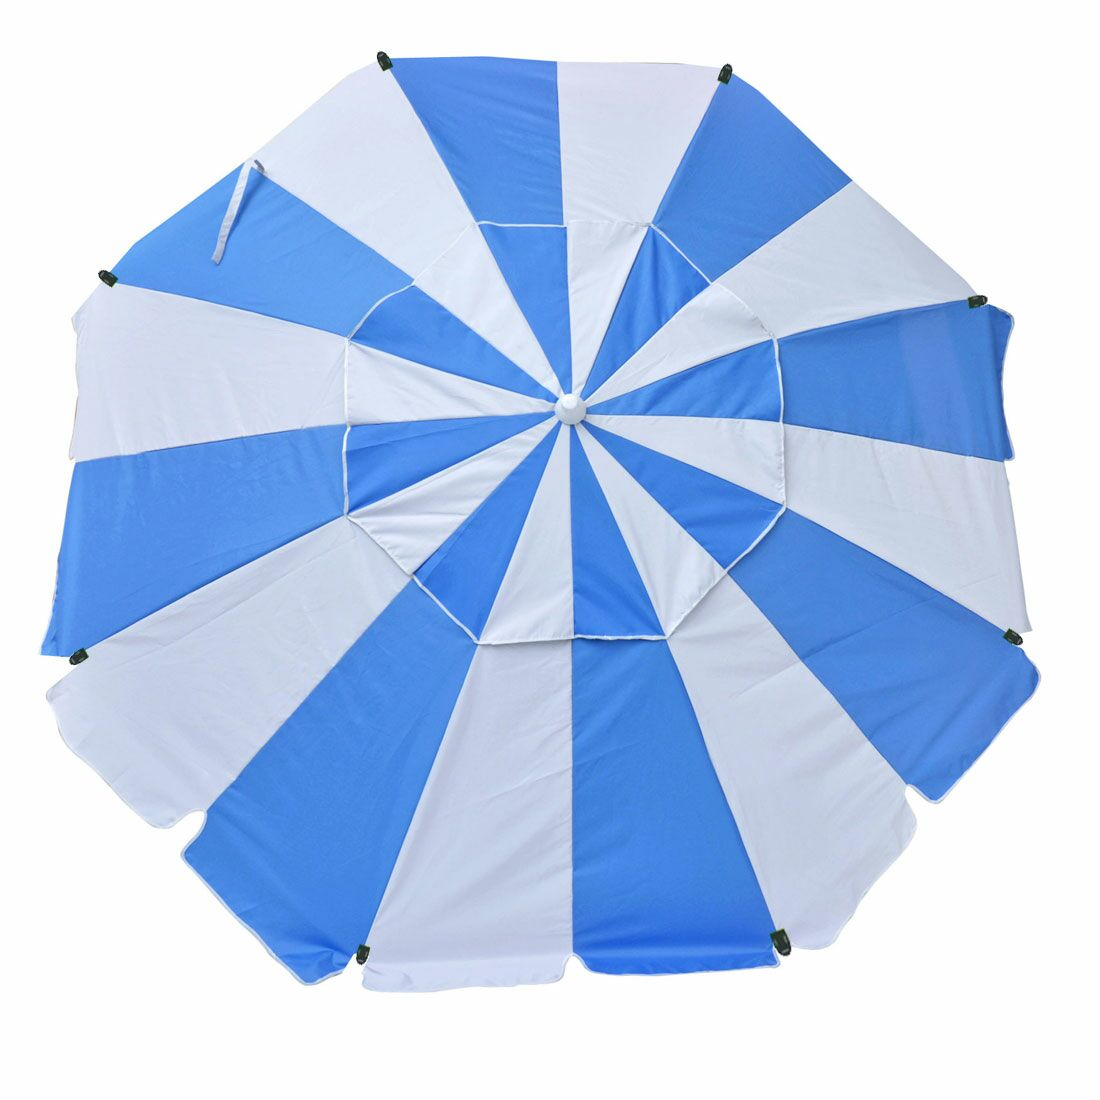 Schroeder Heavy Duty 8' Beach Umbrella Pole Type: Standard Pole, Fabric Color: Blue/White